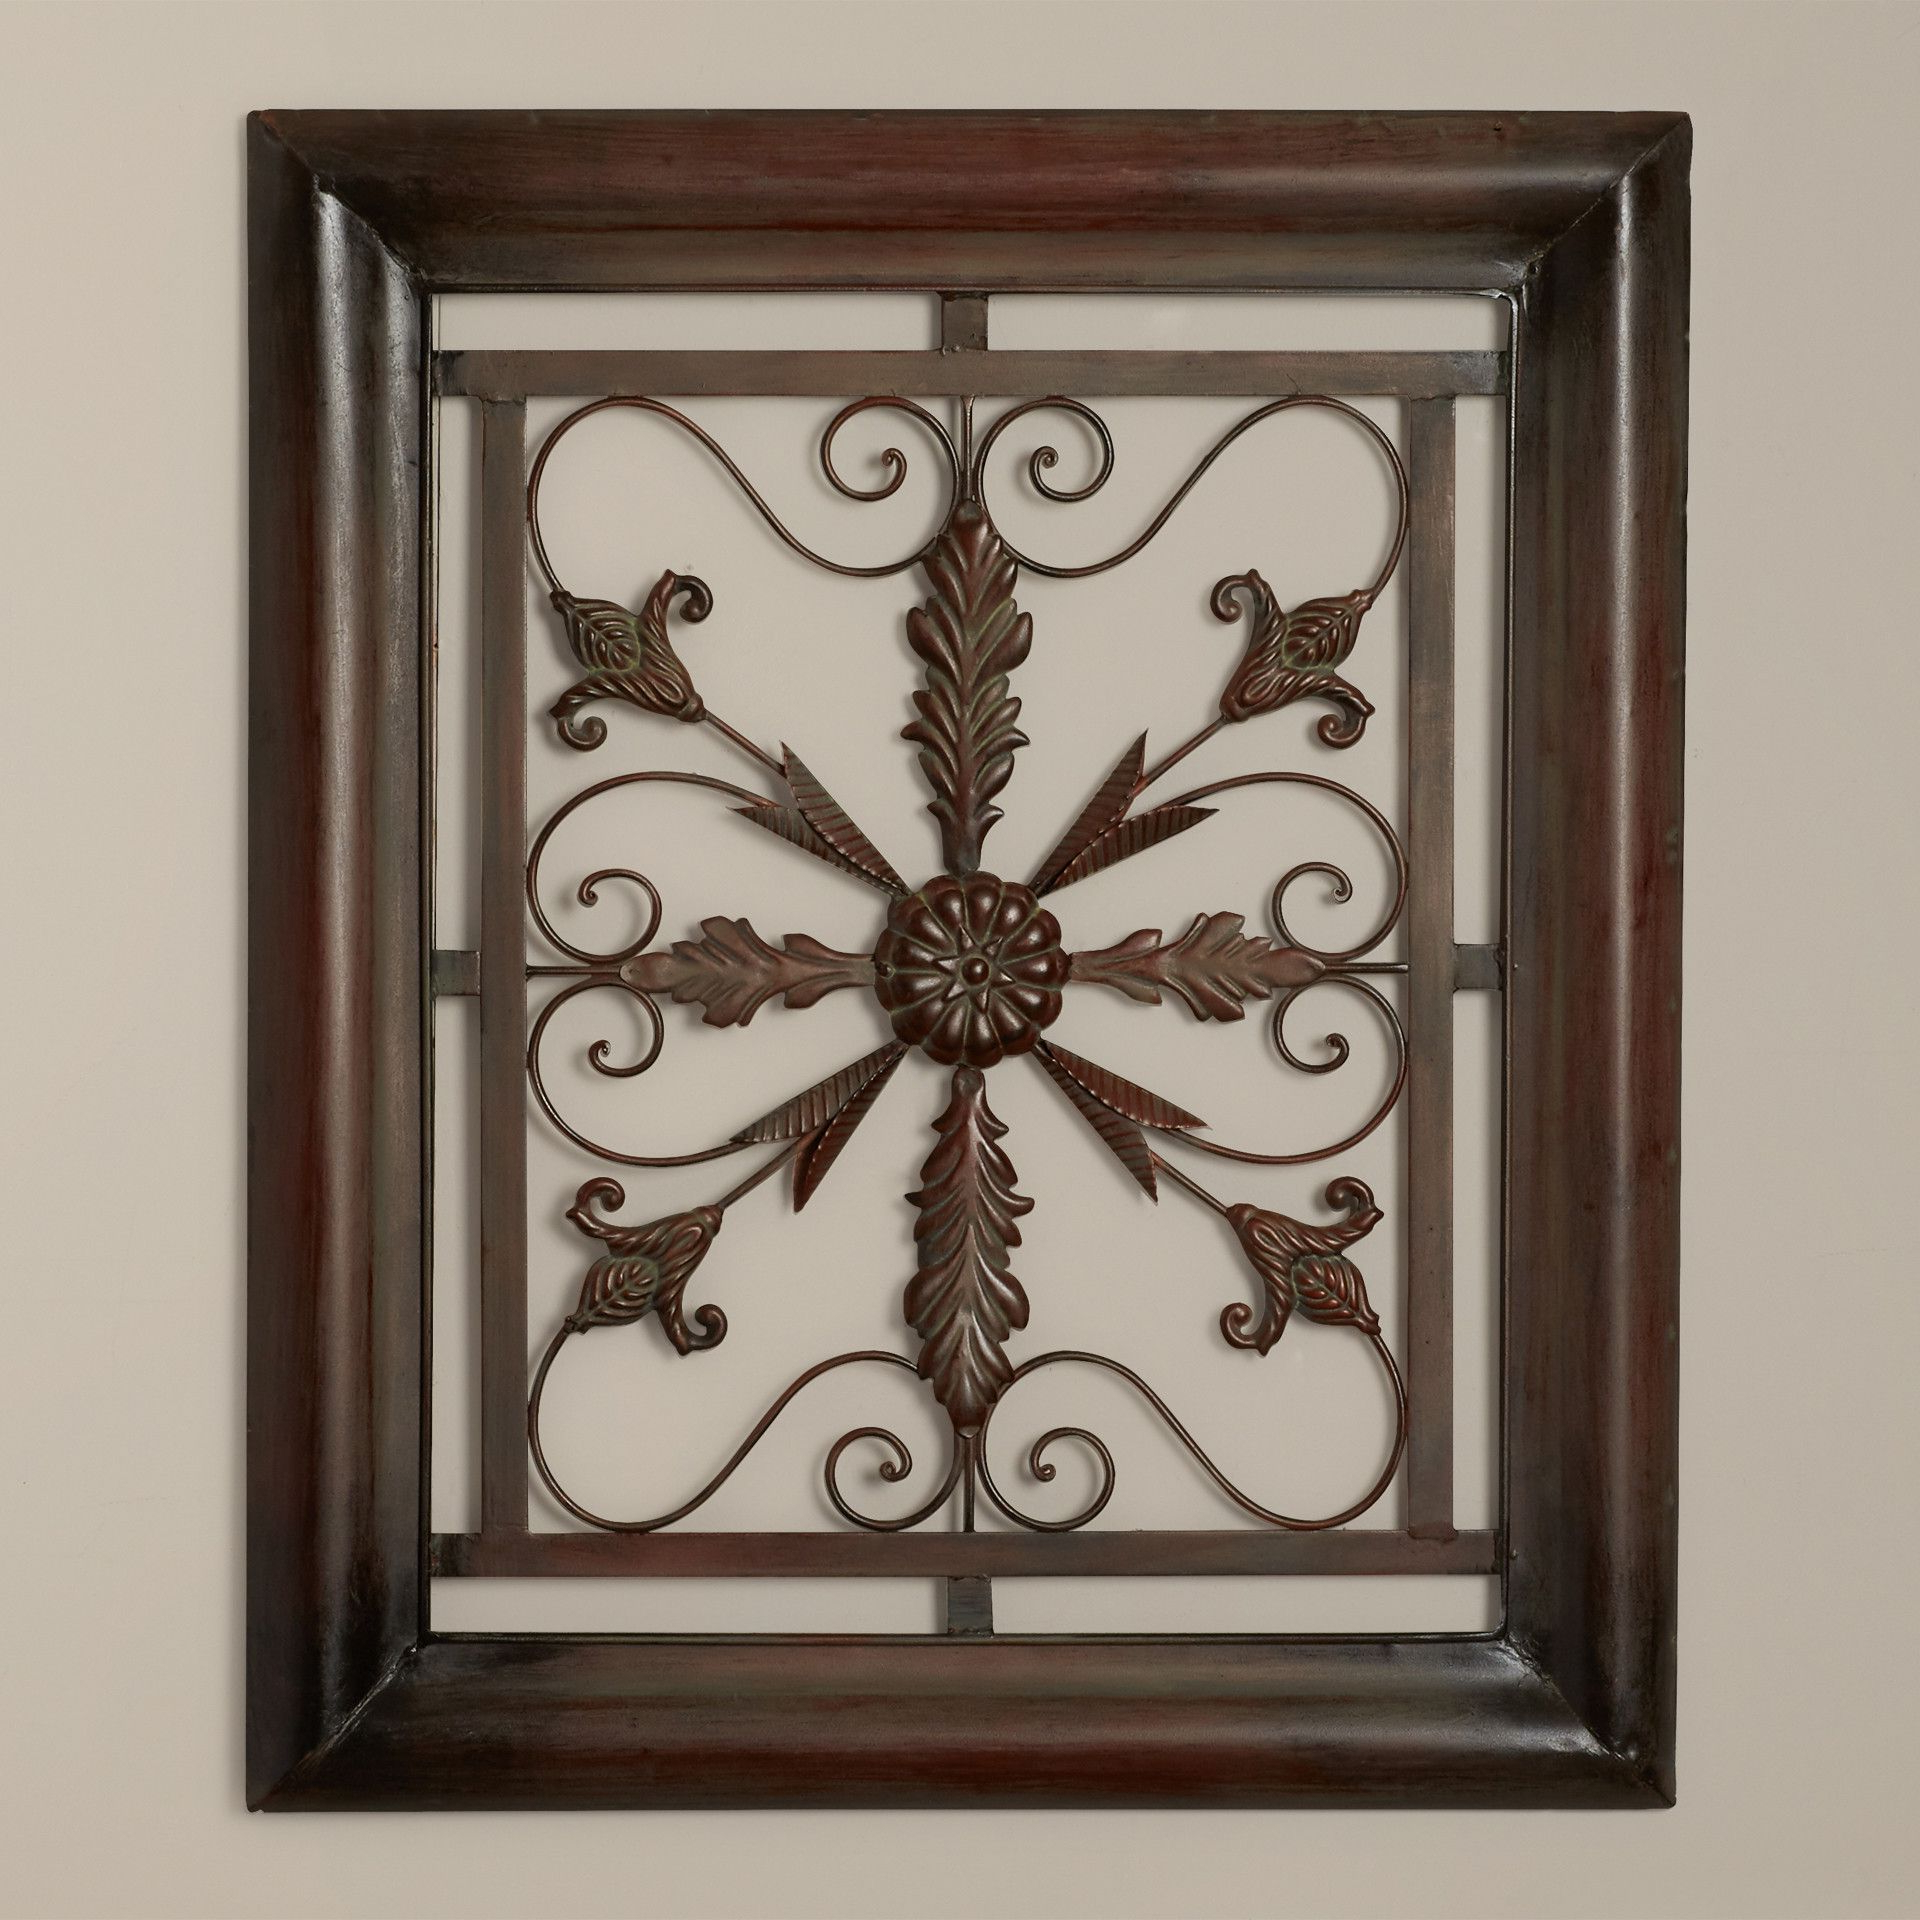 Sign Wall Decor By Charlton Home In Preferred Charlton Home® Bayliss Square Scroll Wall Decor (View 11 of 20)